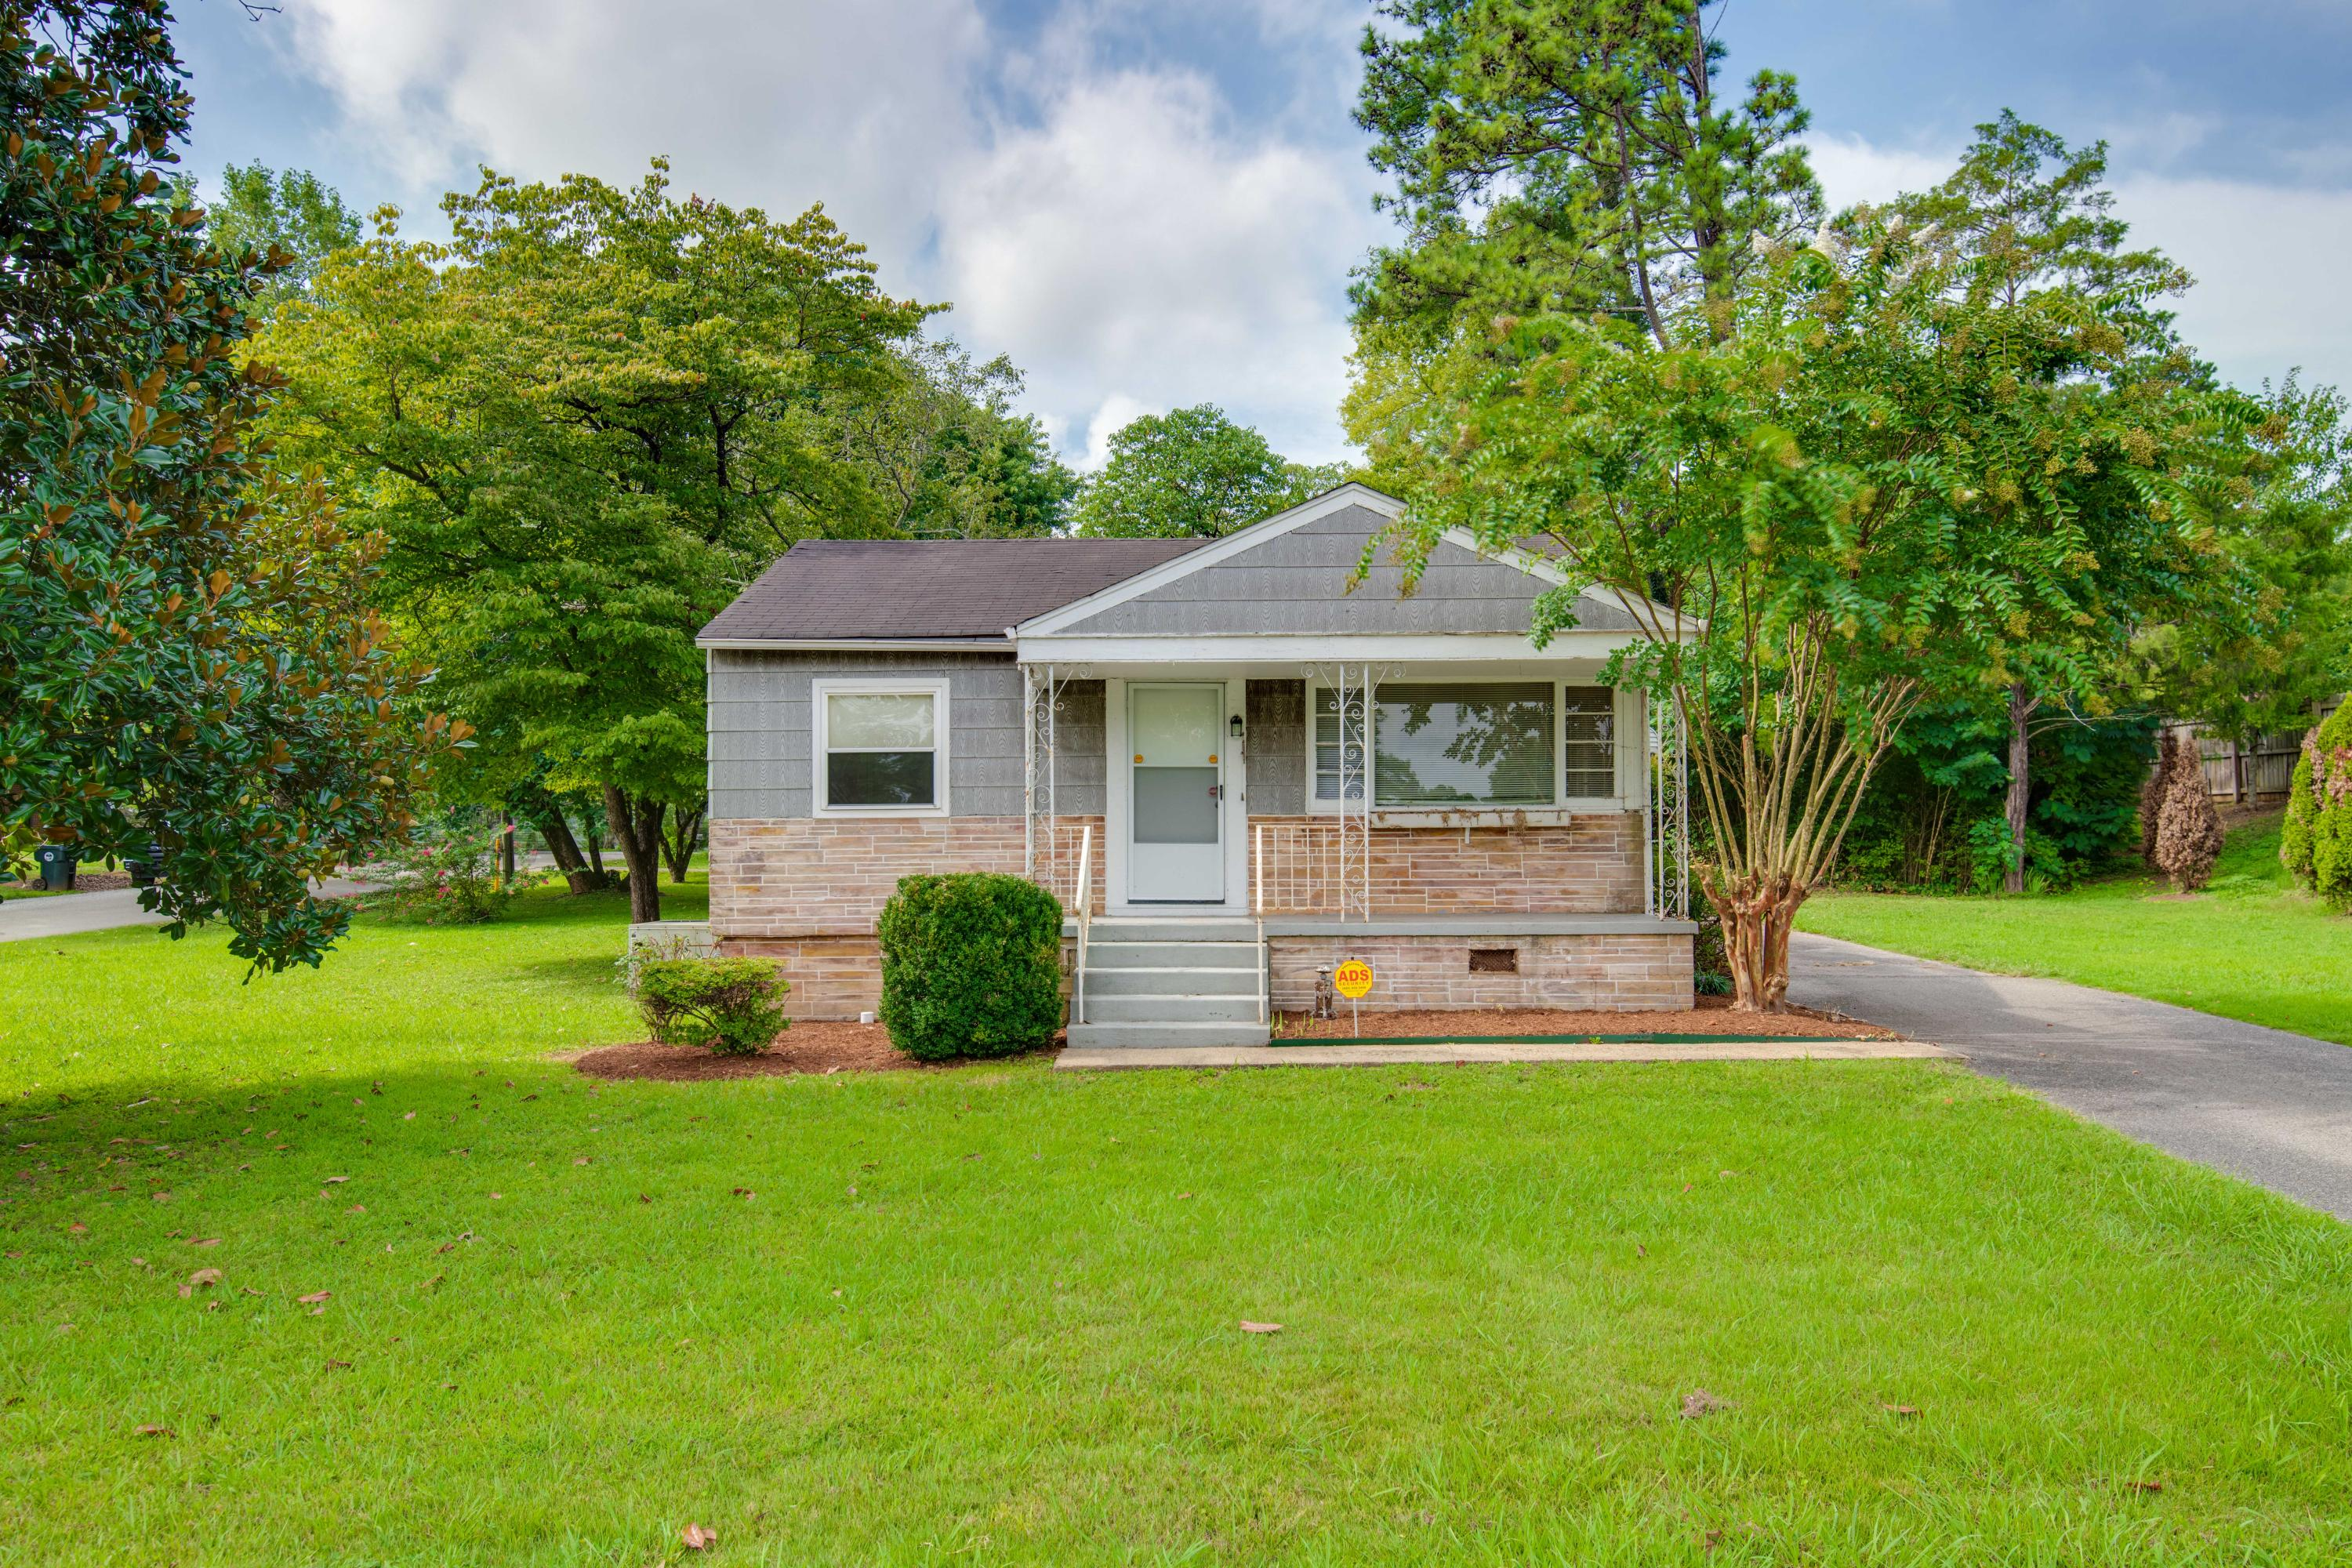 6522 Shallowford Rd, Chattanooga, TN 37421